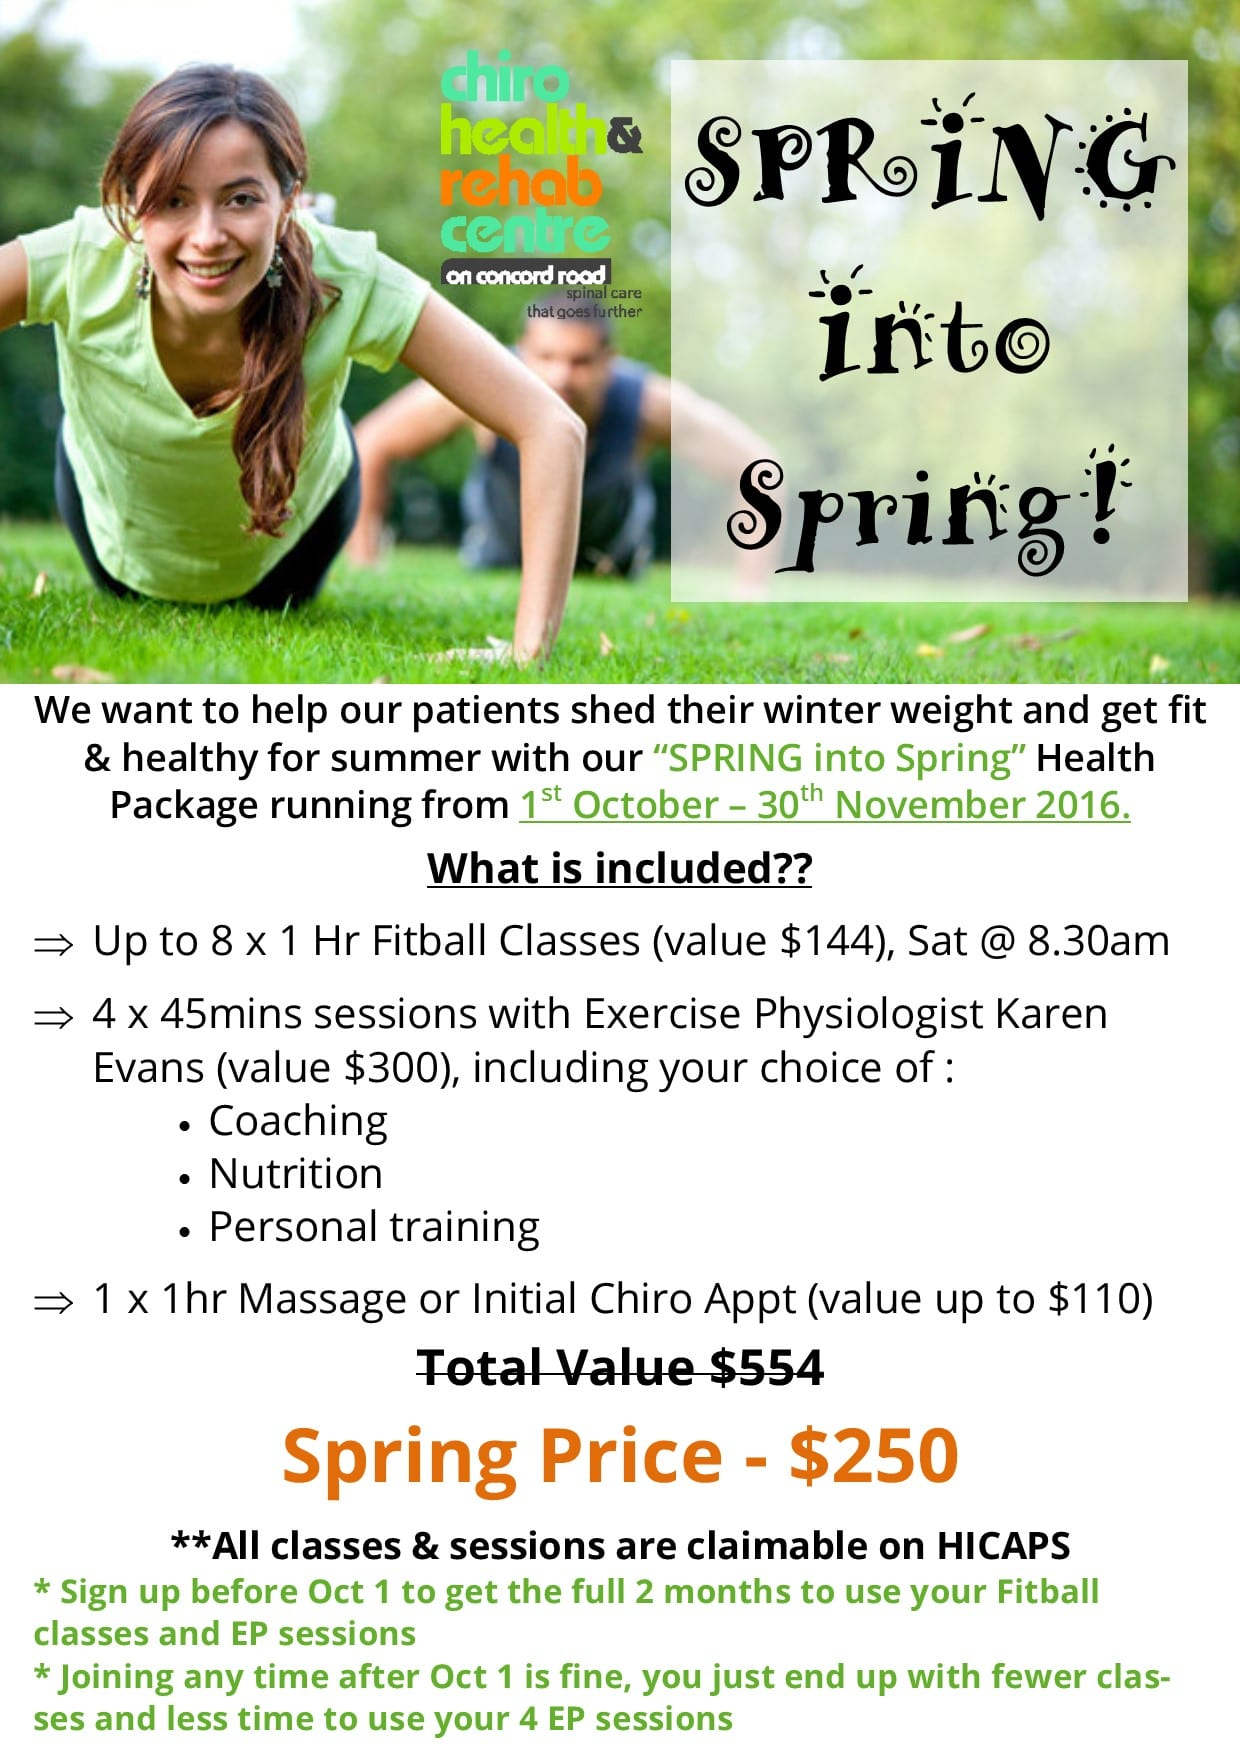 Spring into Spring | Exercise Physiology, Chiro, Massage, Fitball | Concord West Sydney